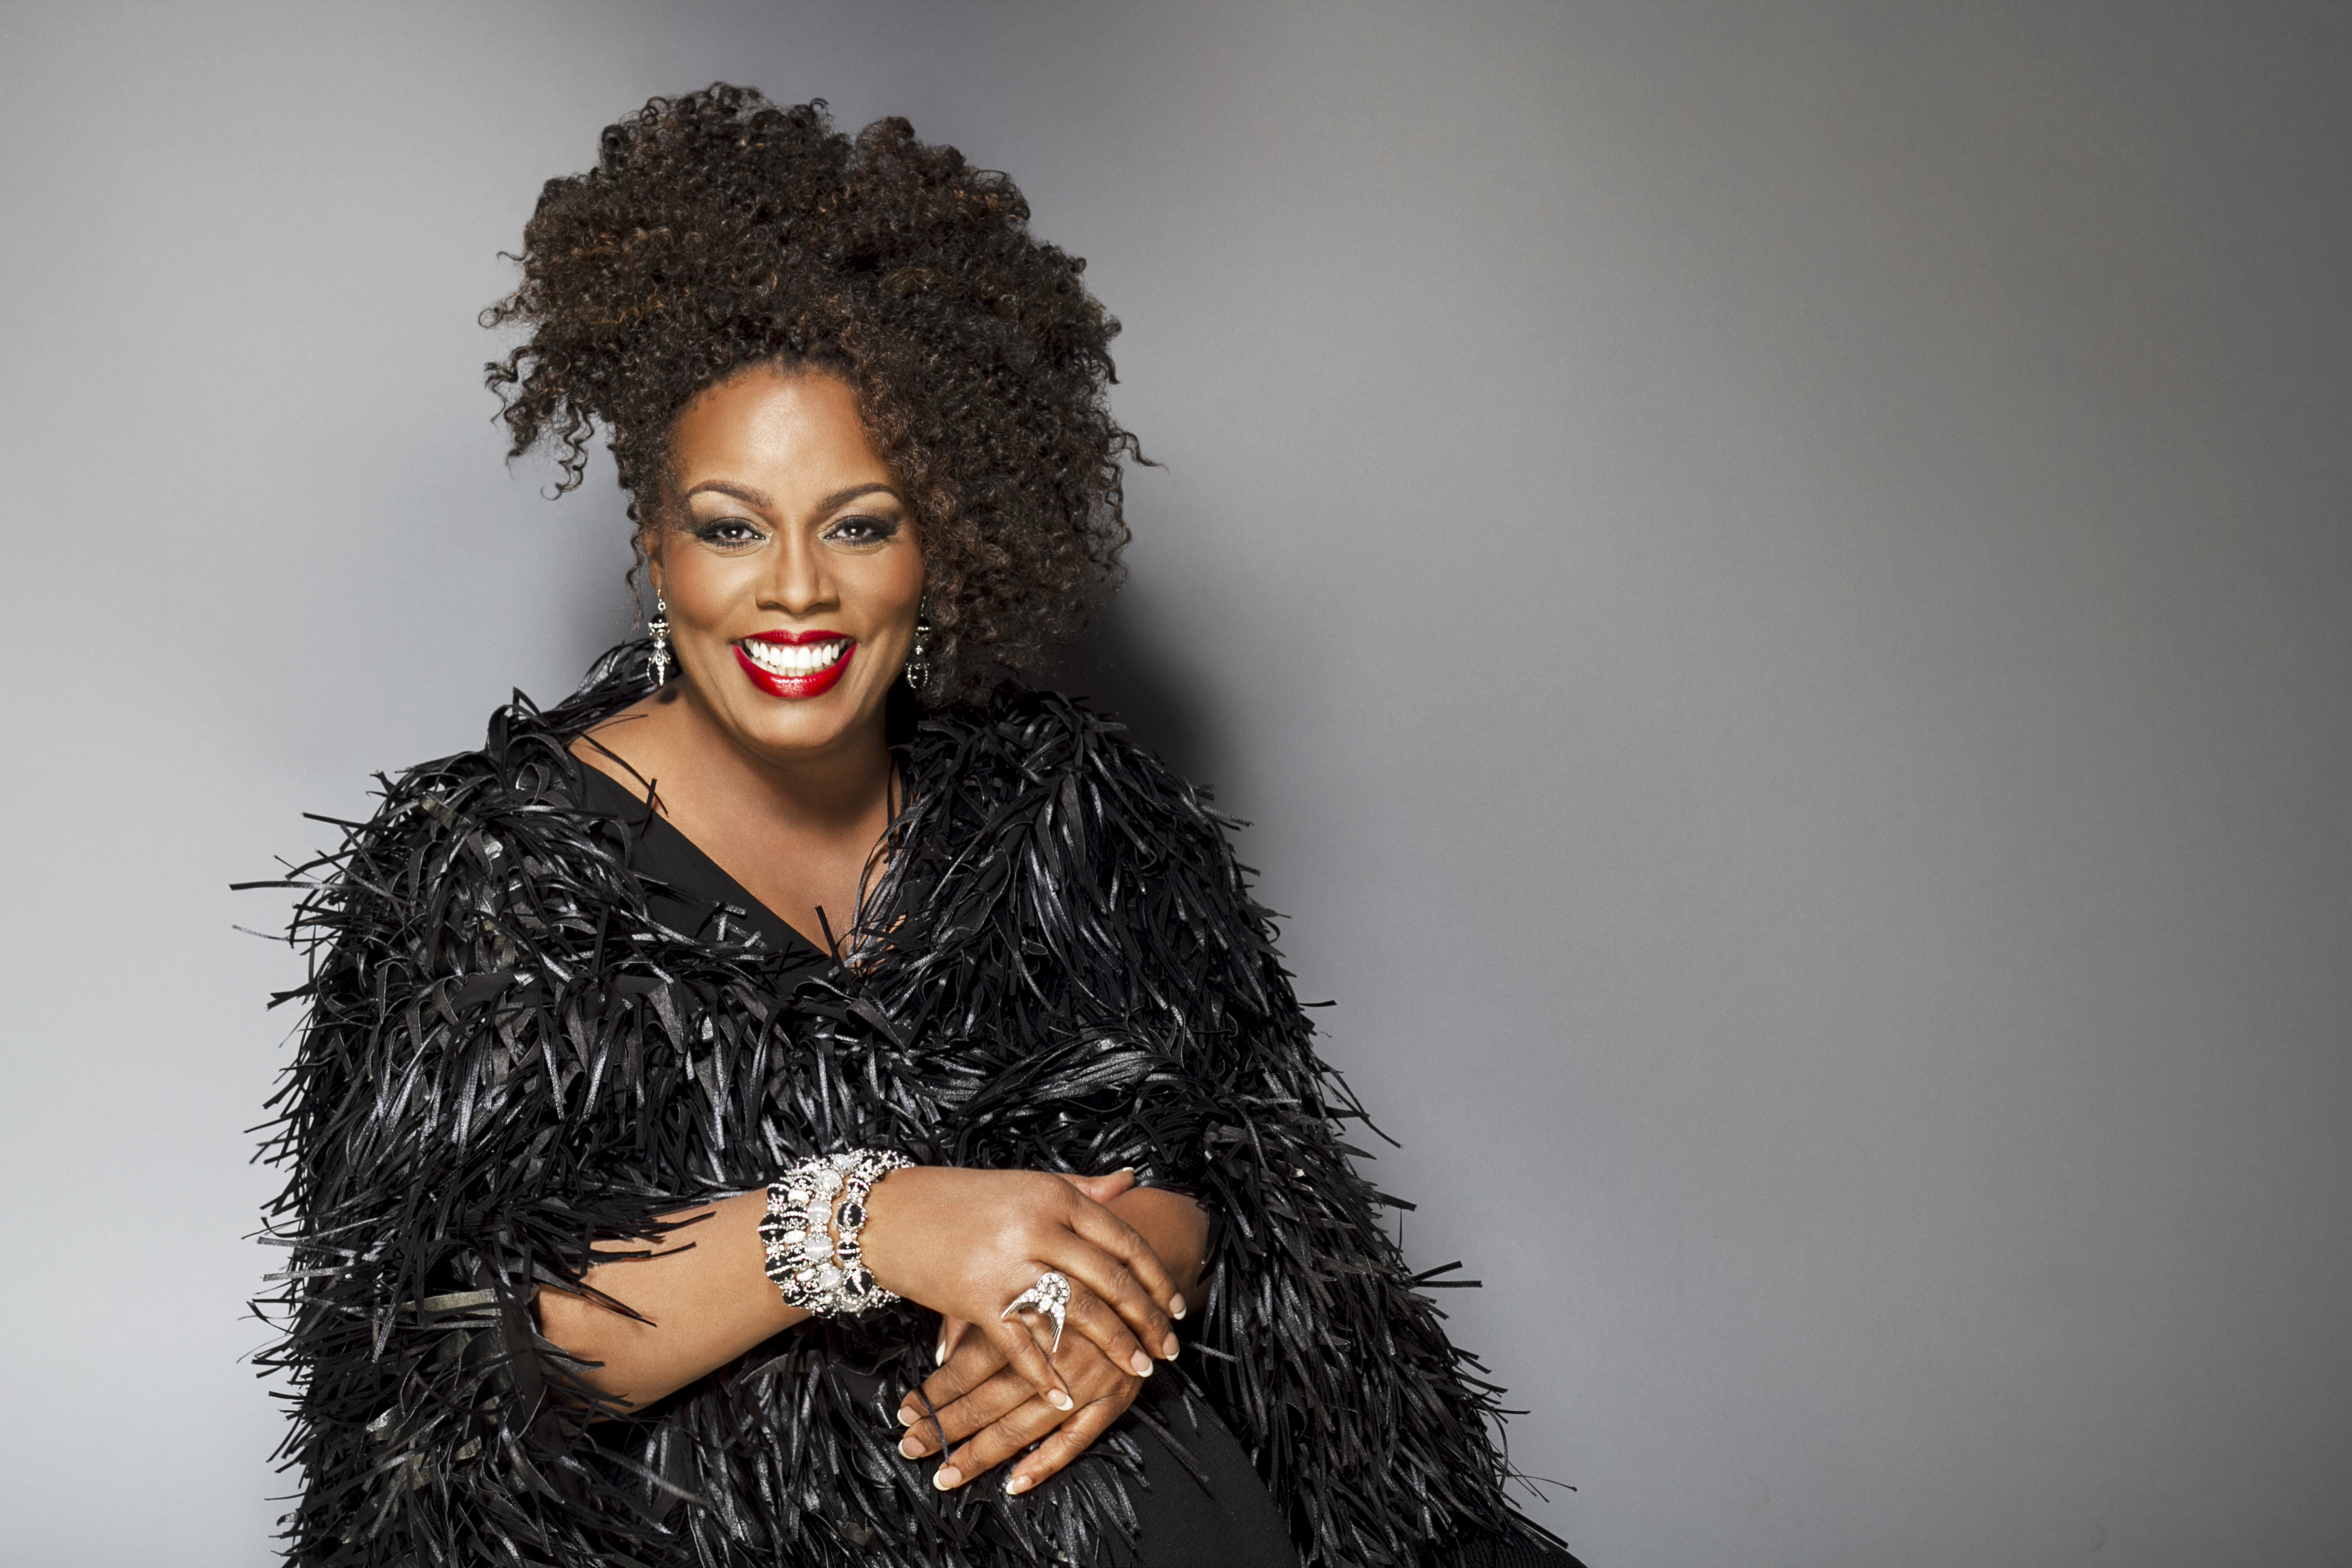 Caption: Dianne Reeves, Credit: jerry Madison